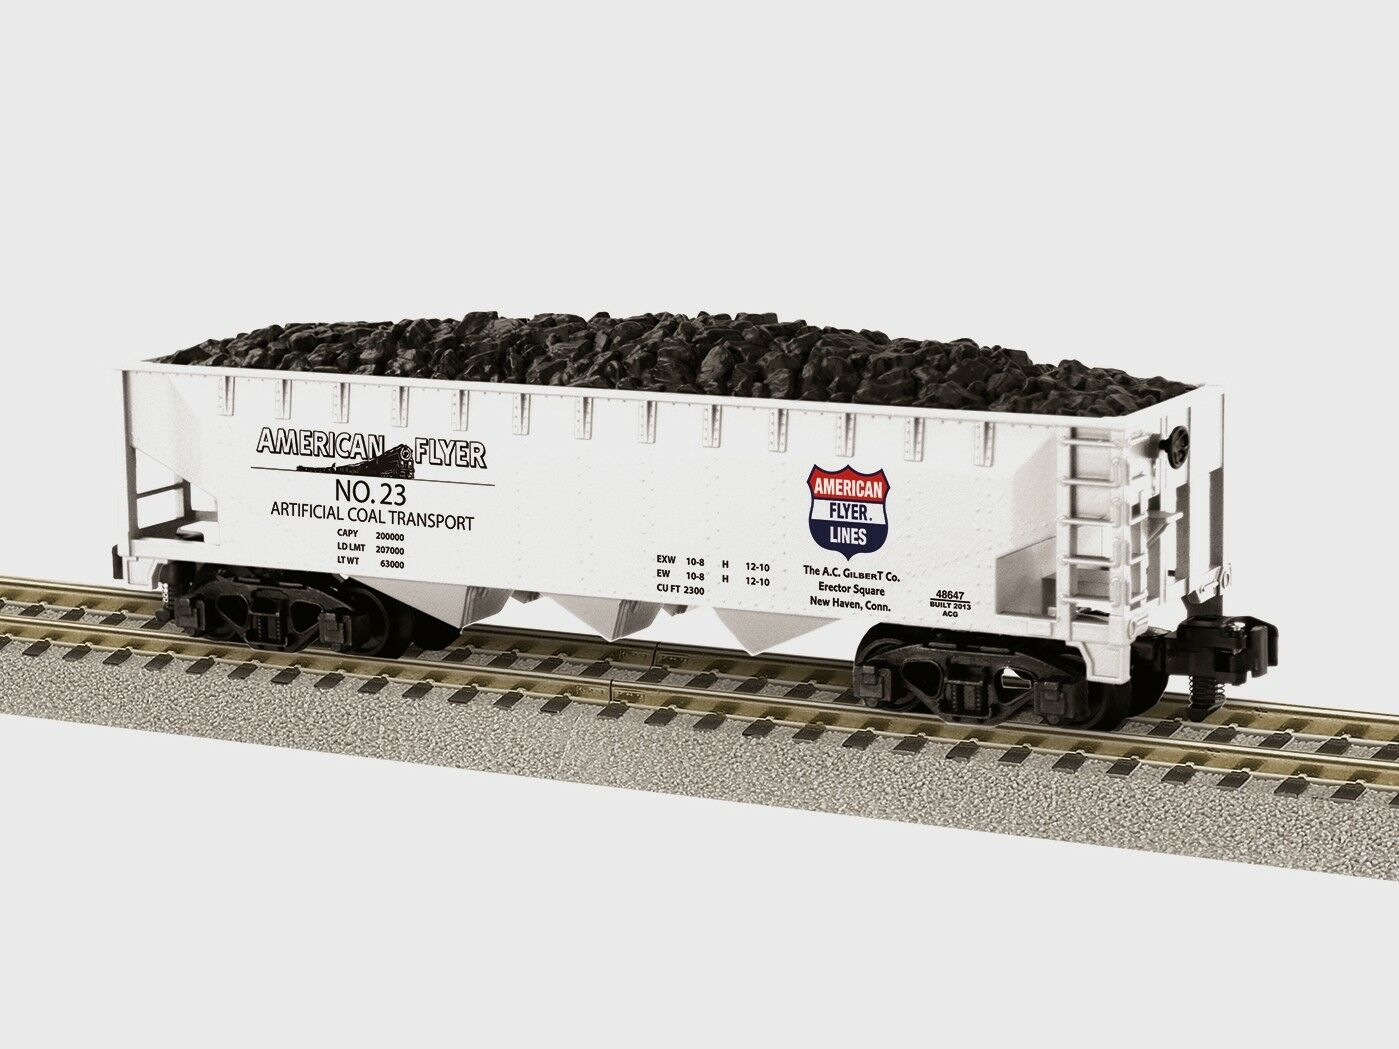 LIONEL AMERICAN FLYER 3 BAY COAL HOPPER S Gauge AF 2 rail train 6-48647 NEW